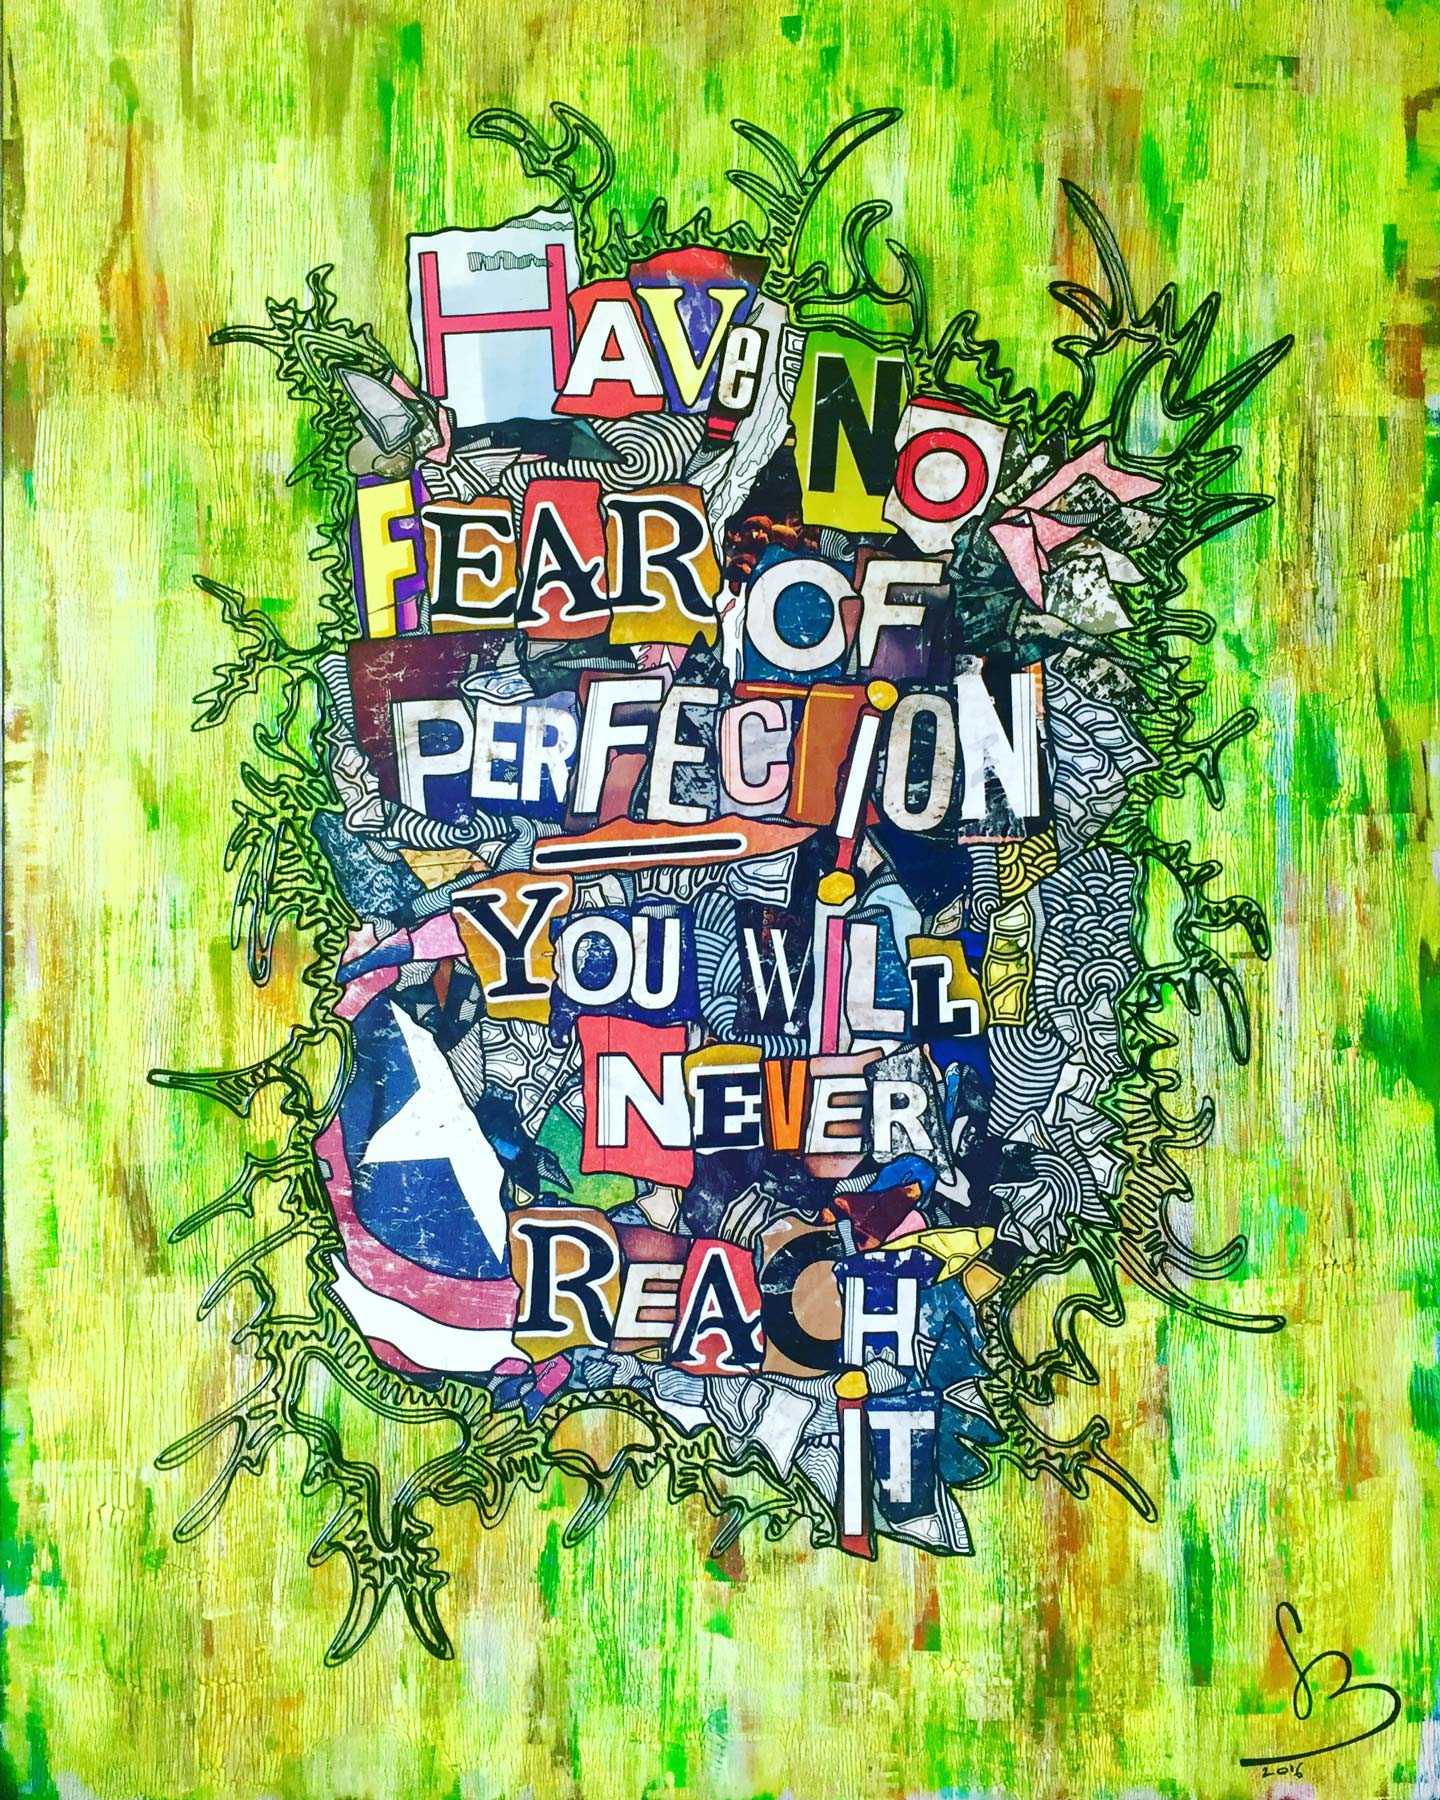 Have No Fear Of Perfection Grégory Berben Mai 2016